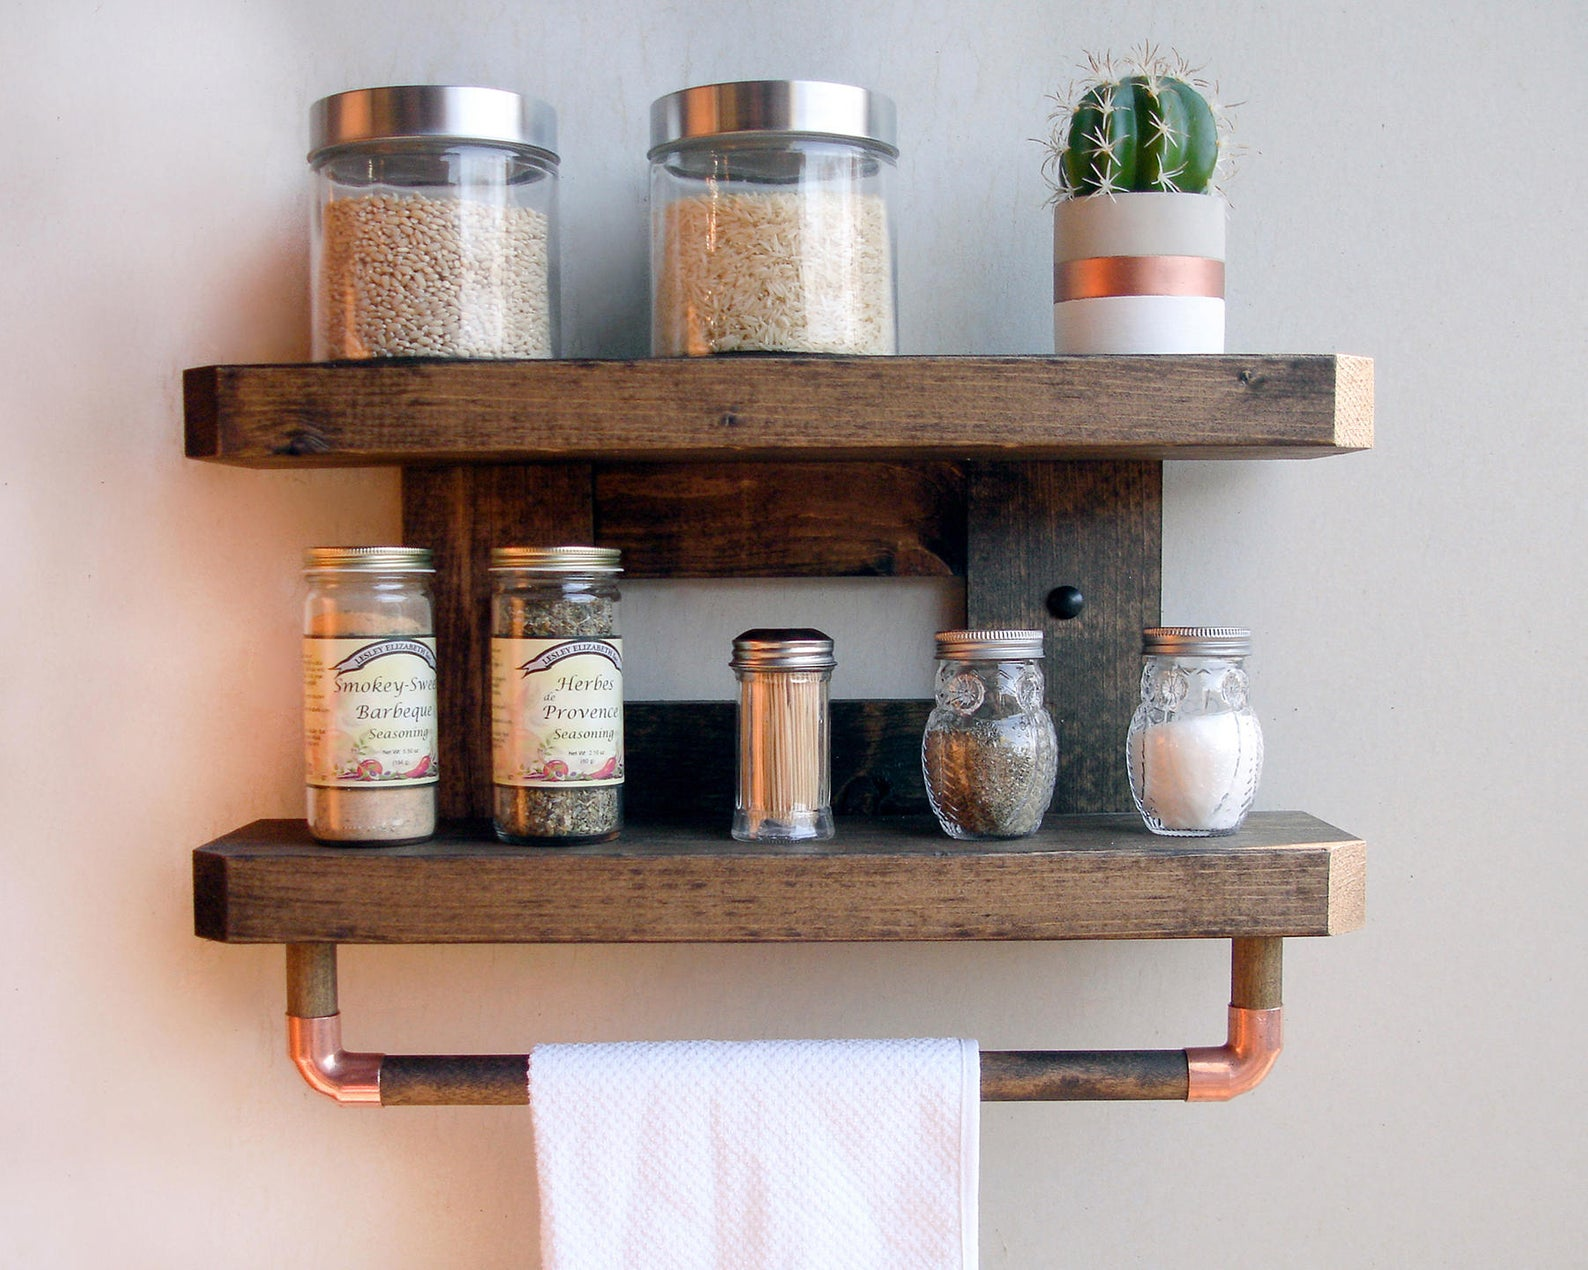 wooden wall rack with spices on it and tea towel hanging from rack